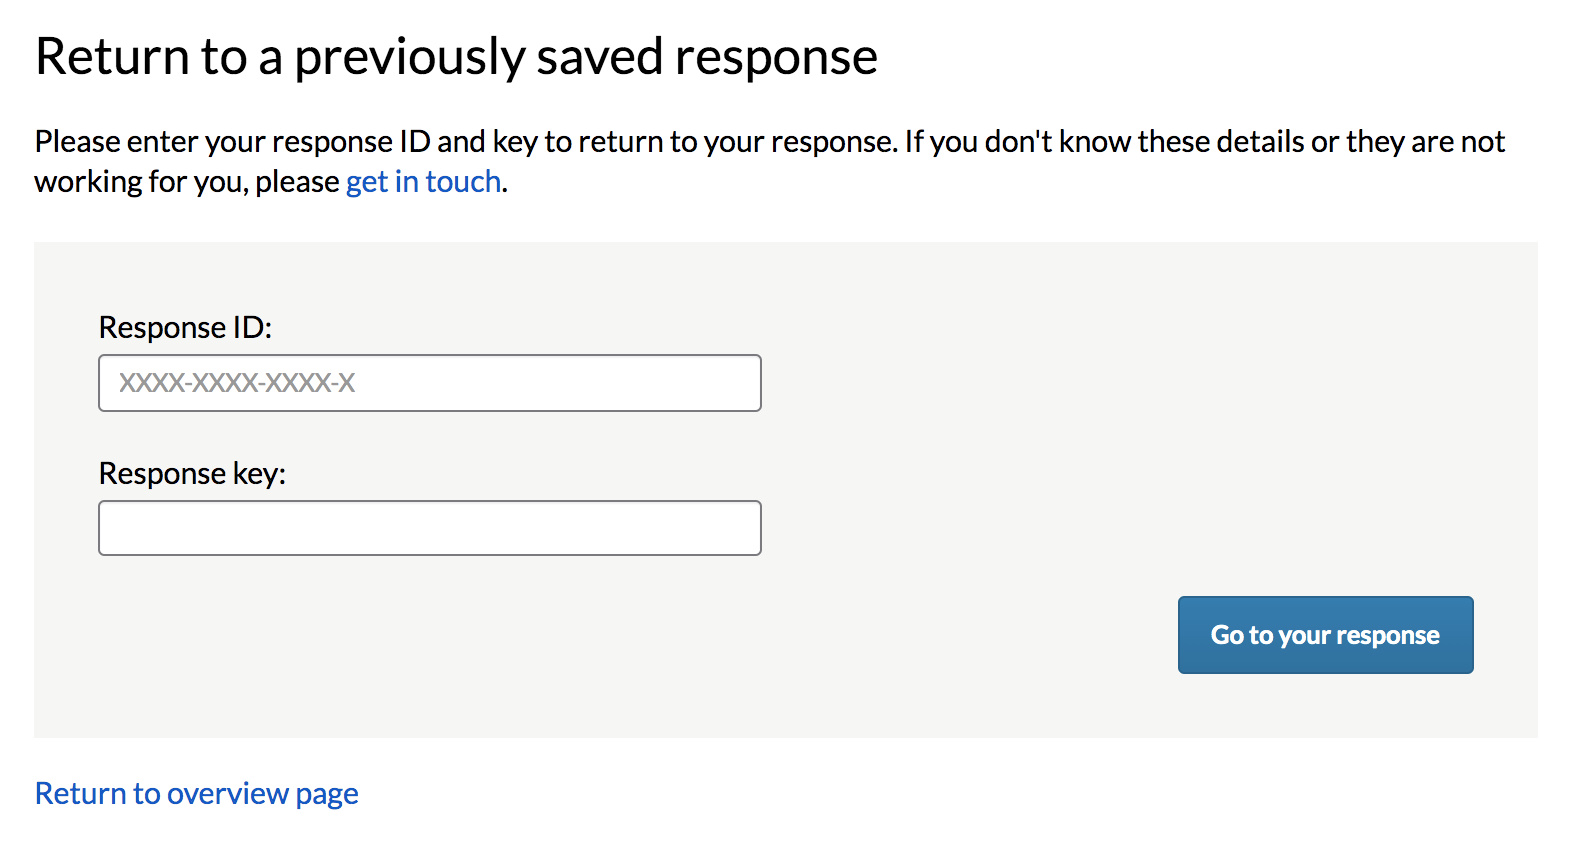 Screen to enter Response ID and Response Key